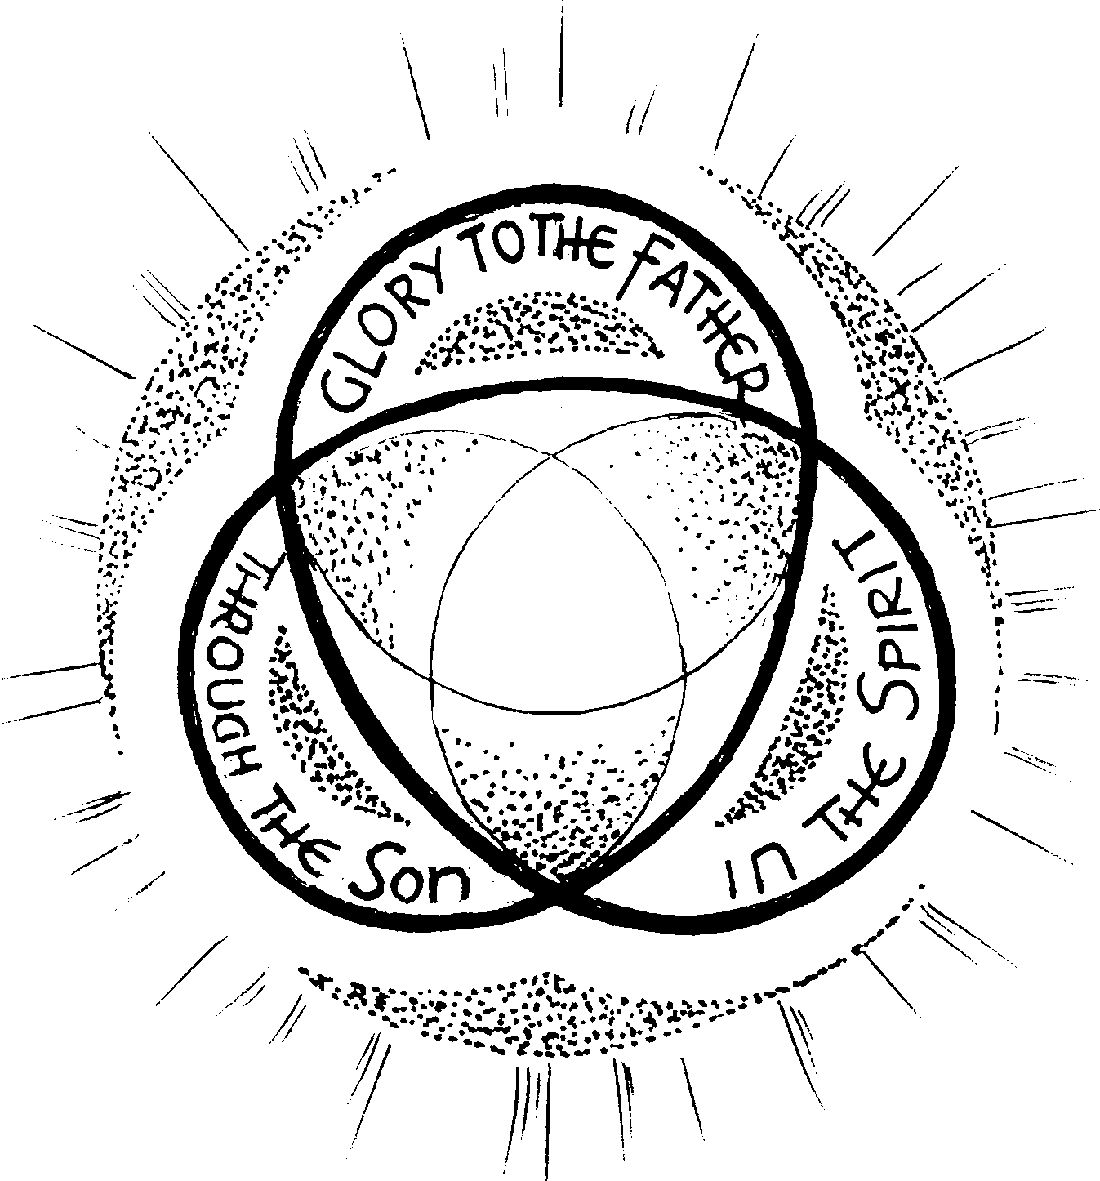 Solemnity Holy Trinity additionally Clipart Eucharist also BlogSherifMichael False Prophets Money 003 together with Witchmen Pagan Morristattoos together with Succubus. on trinity blood coloring pages